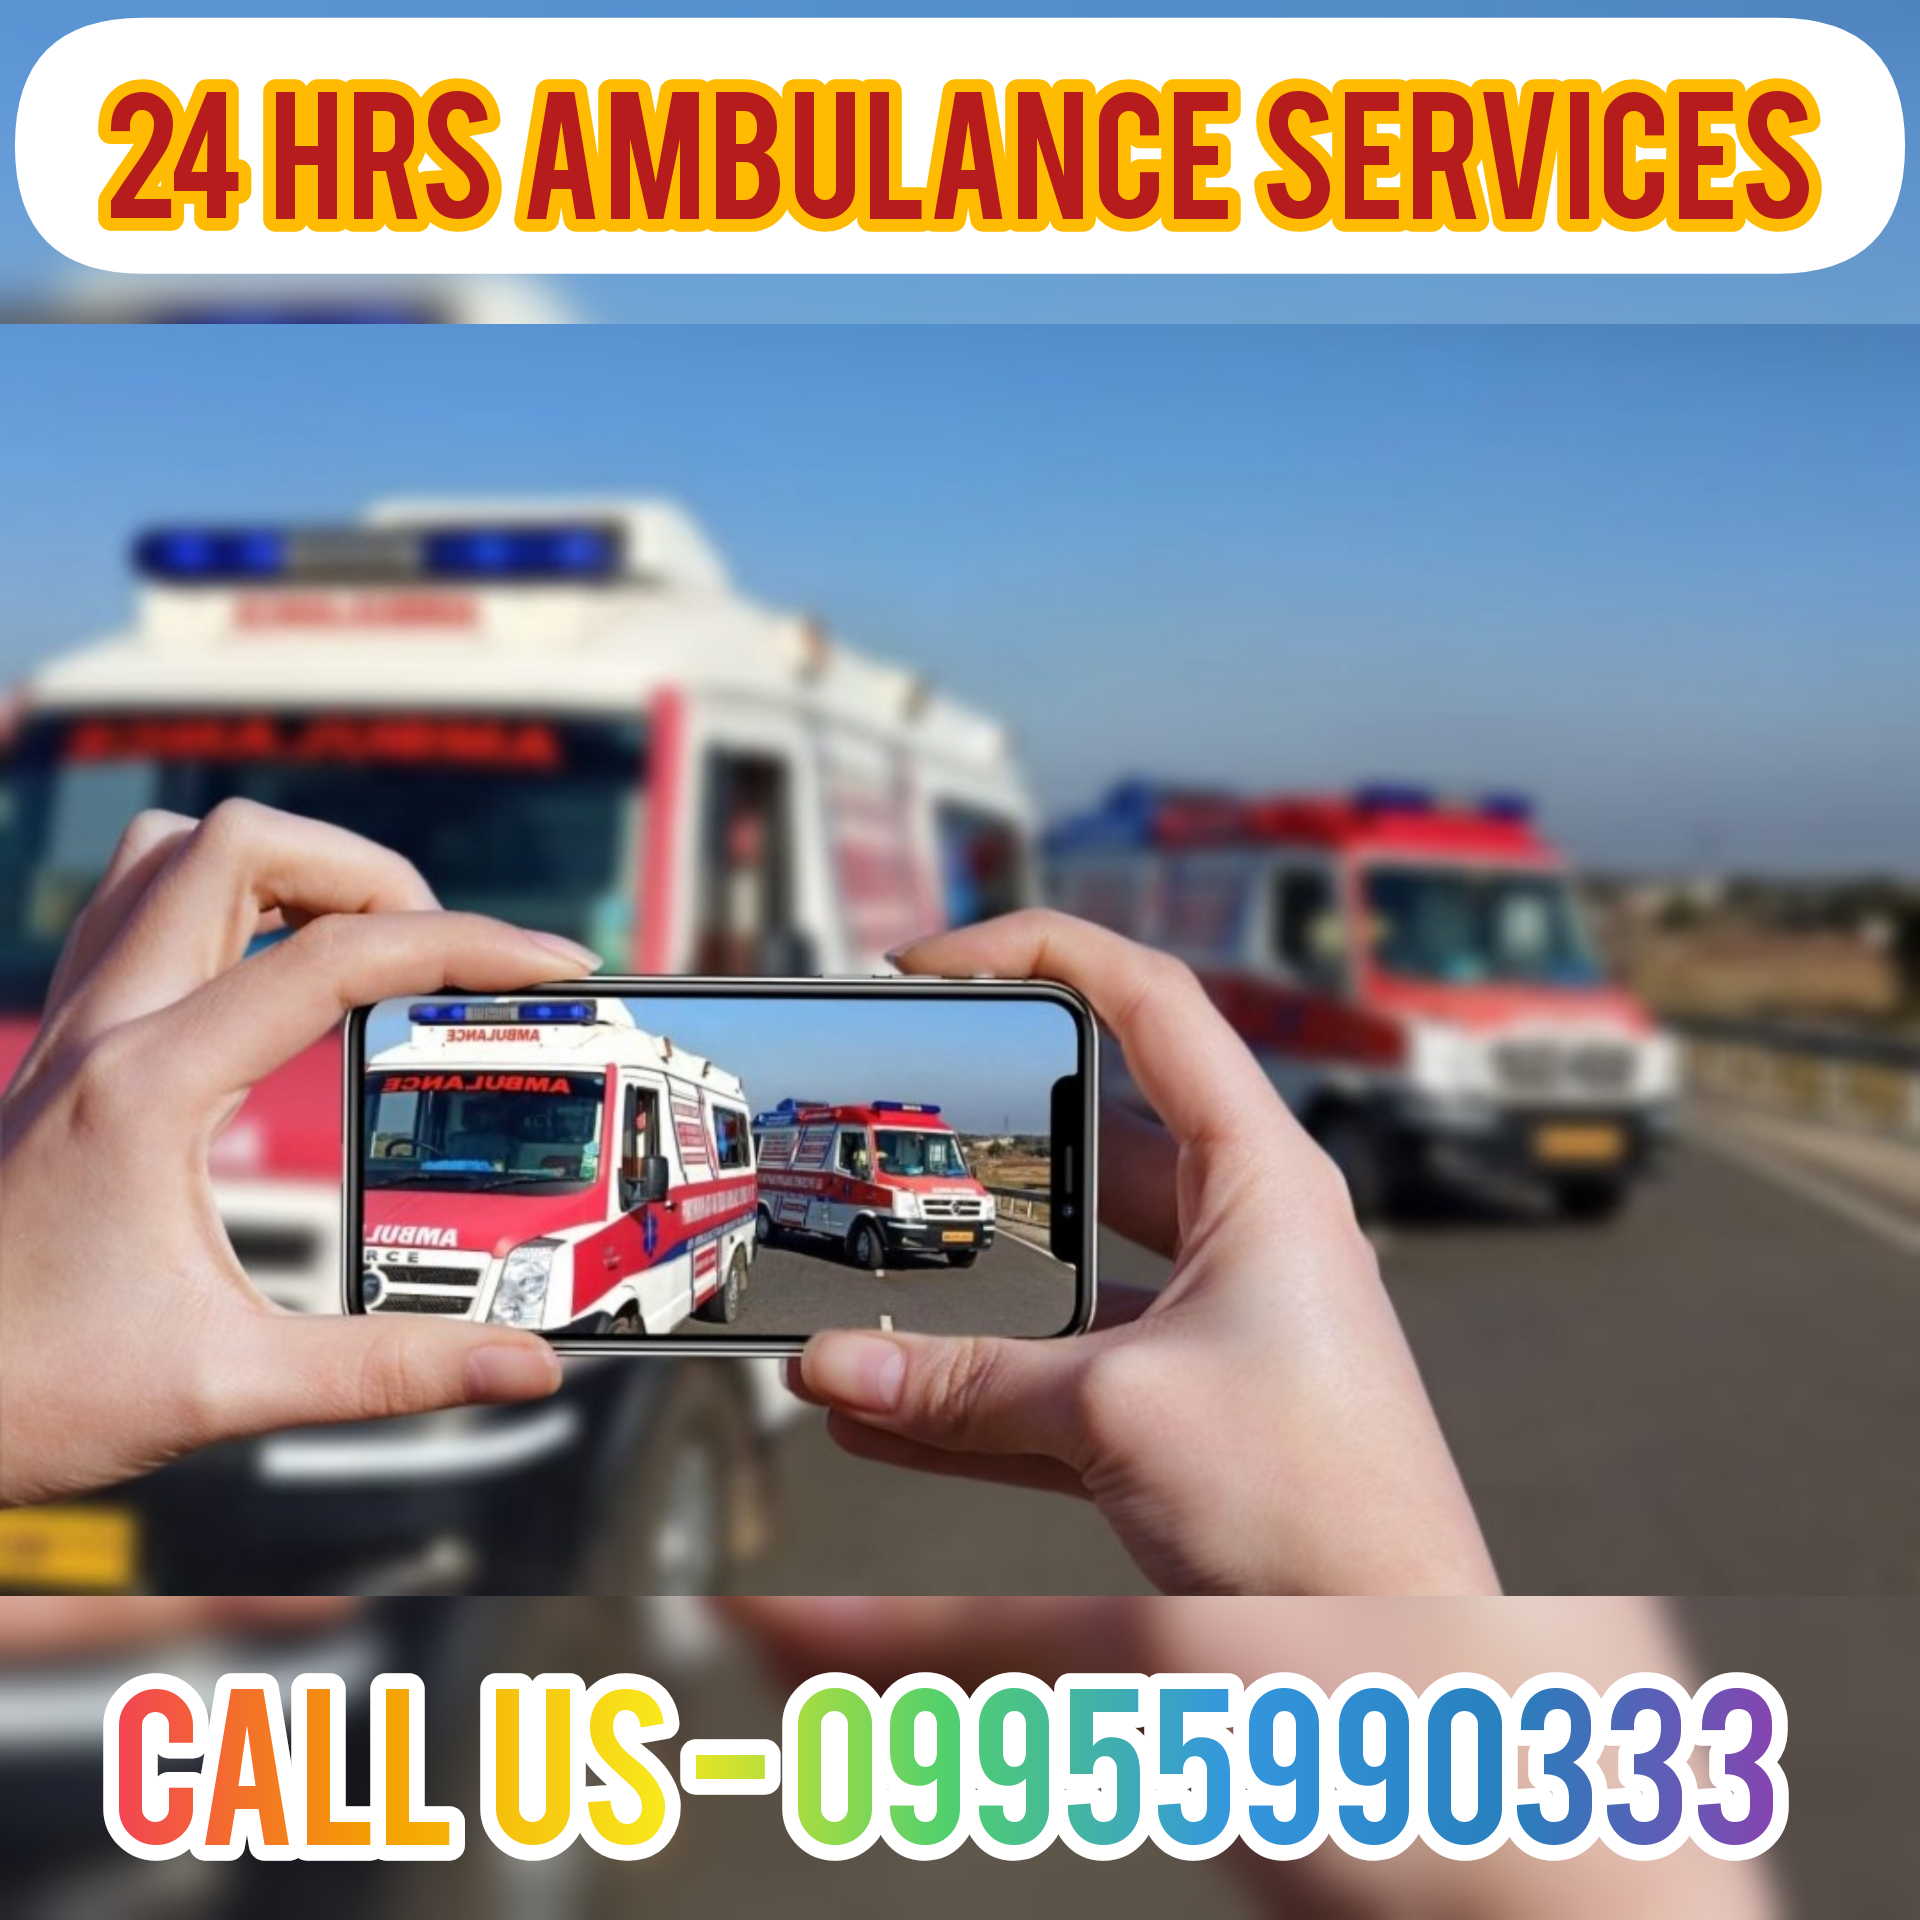 24 Hrs Emergency Medical Cares in Ambulance Service in Manipur